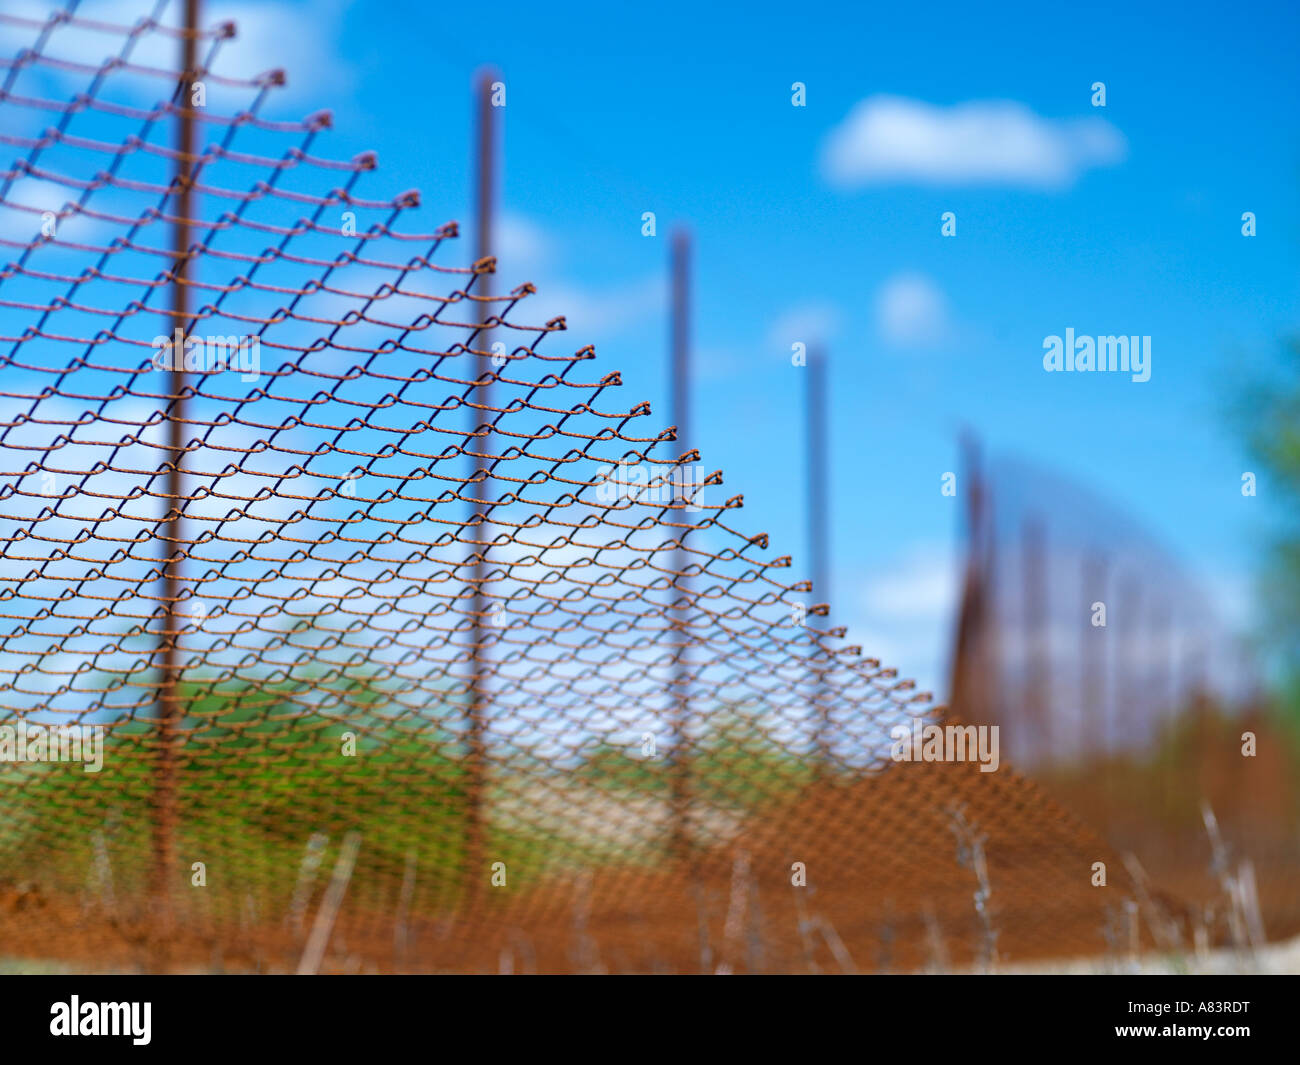 Chicken wire fence abstract Stock Photo: 11978003 - Alamy